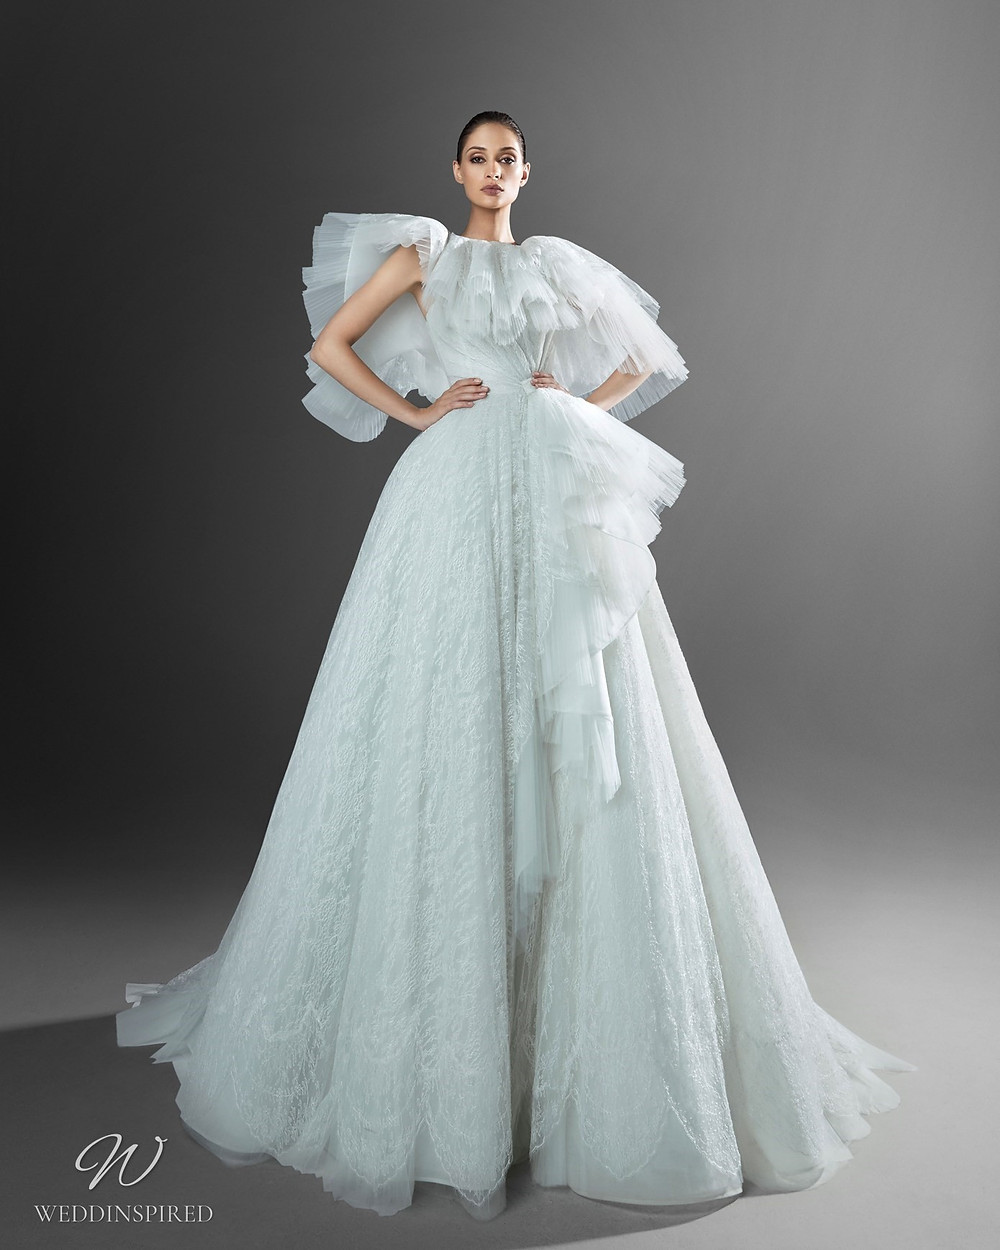 A Zuhair Murad strapless light blue princess ball gown Cinderella wedding dress with a tulle skirt and a removable tulle neck piece